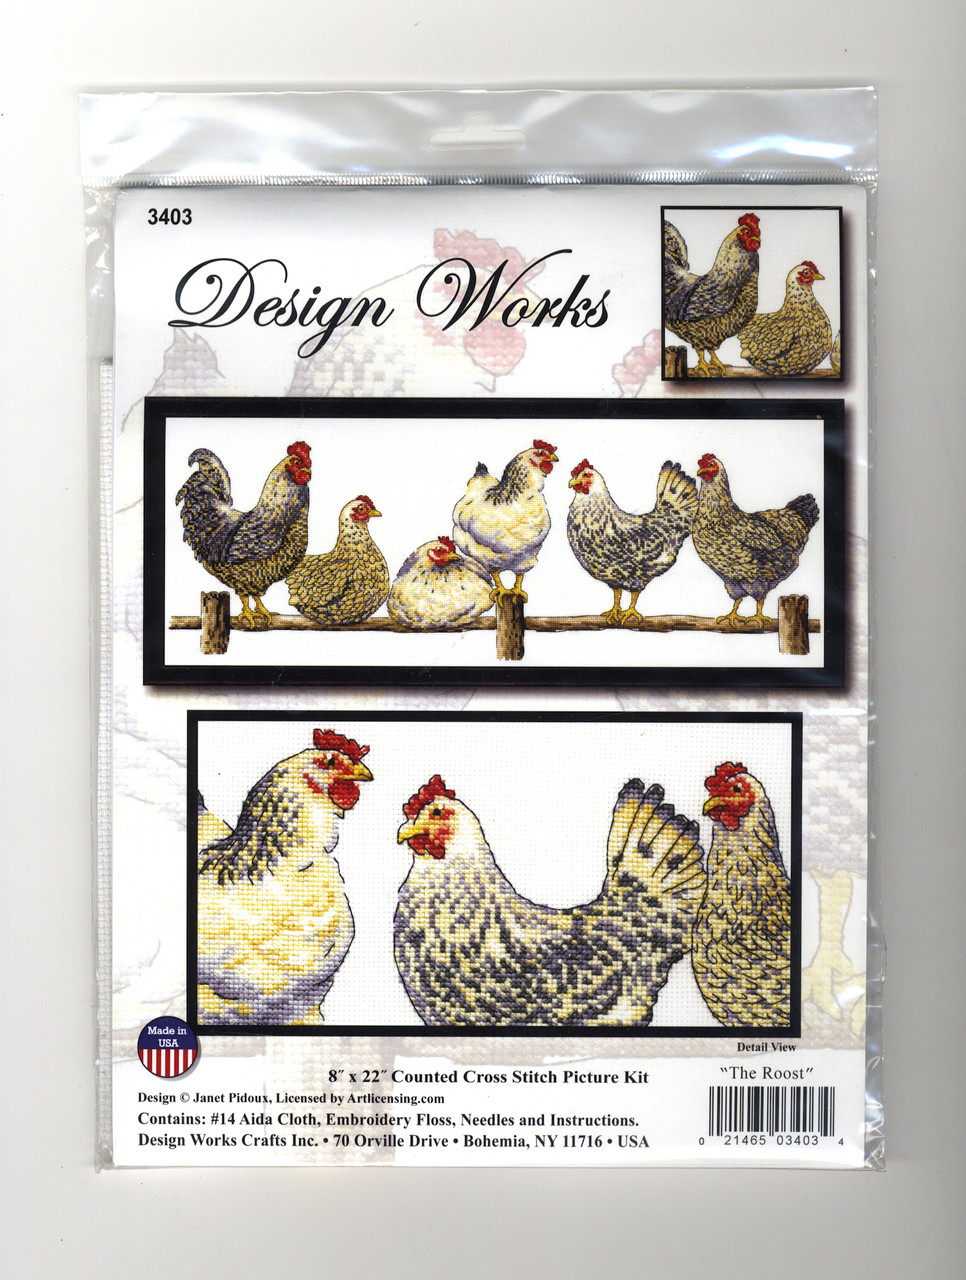 Design Works - The Roost